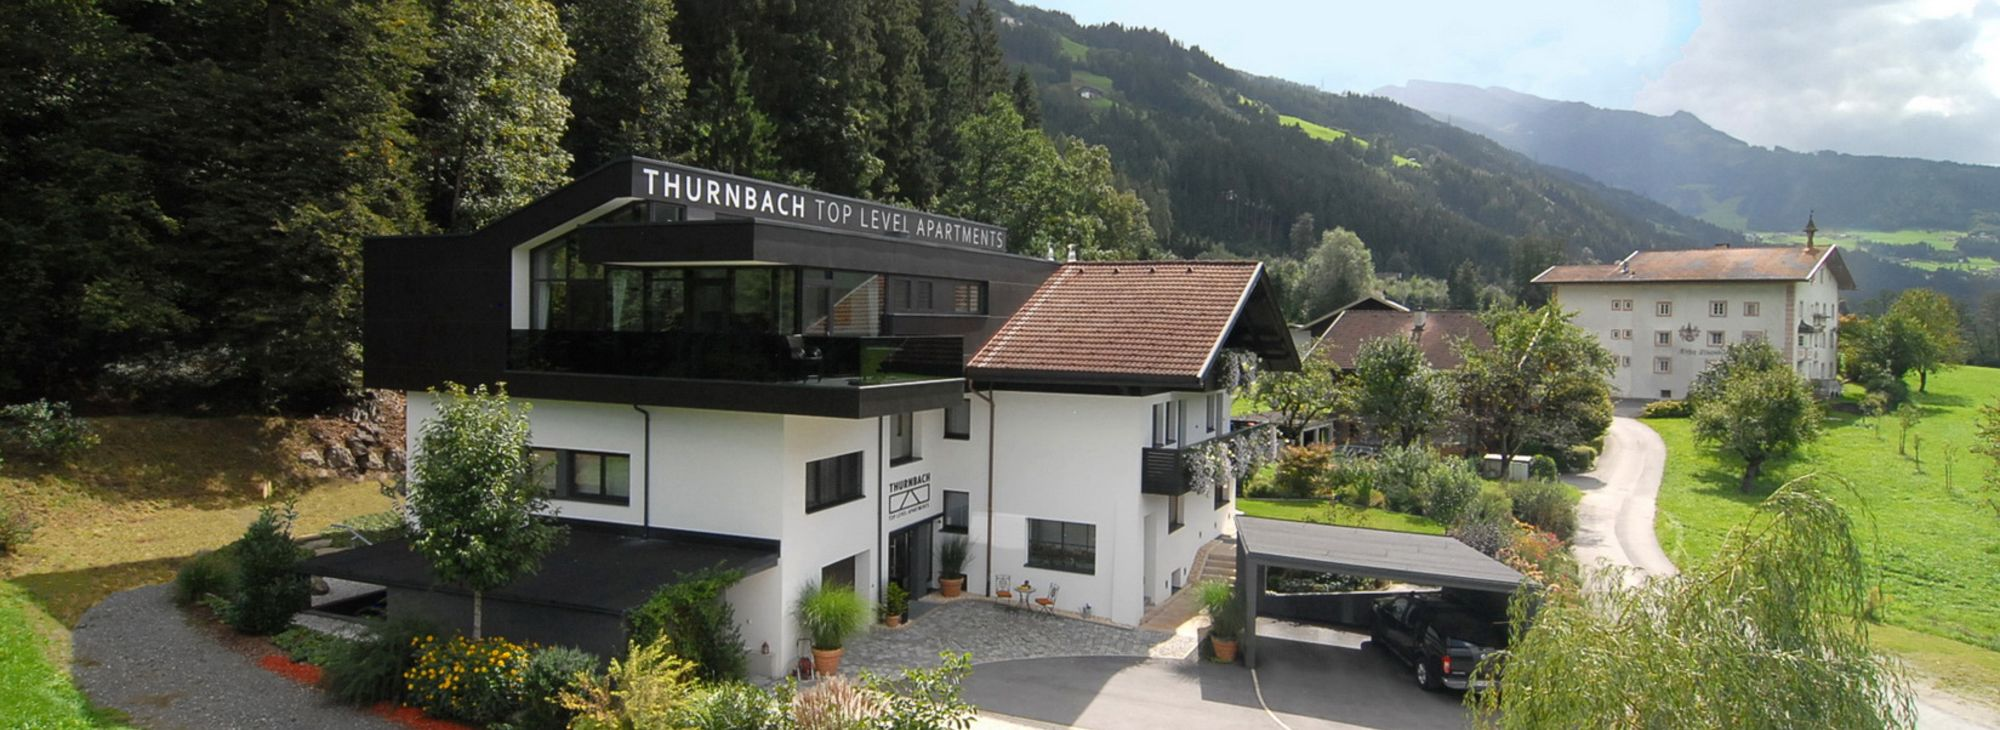 Moderne Appartements in Aschau im Zillertal